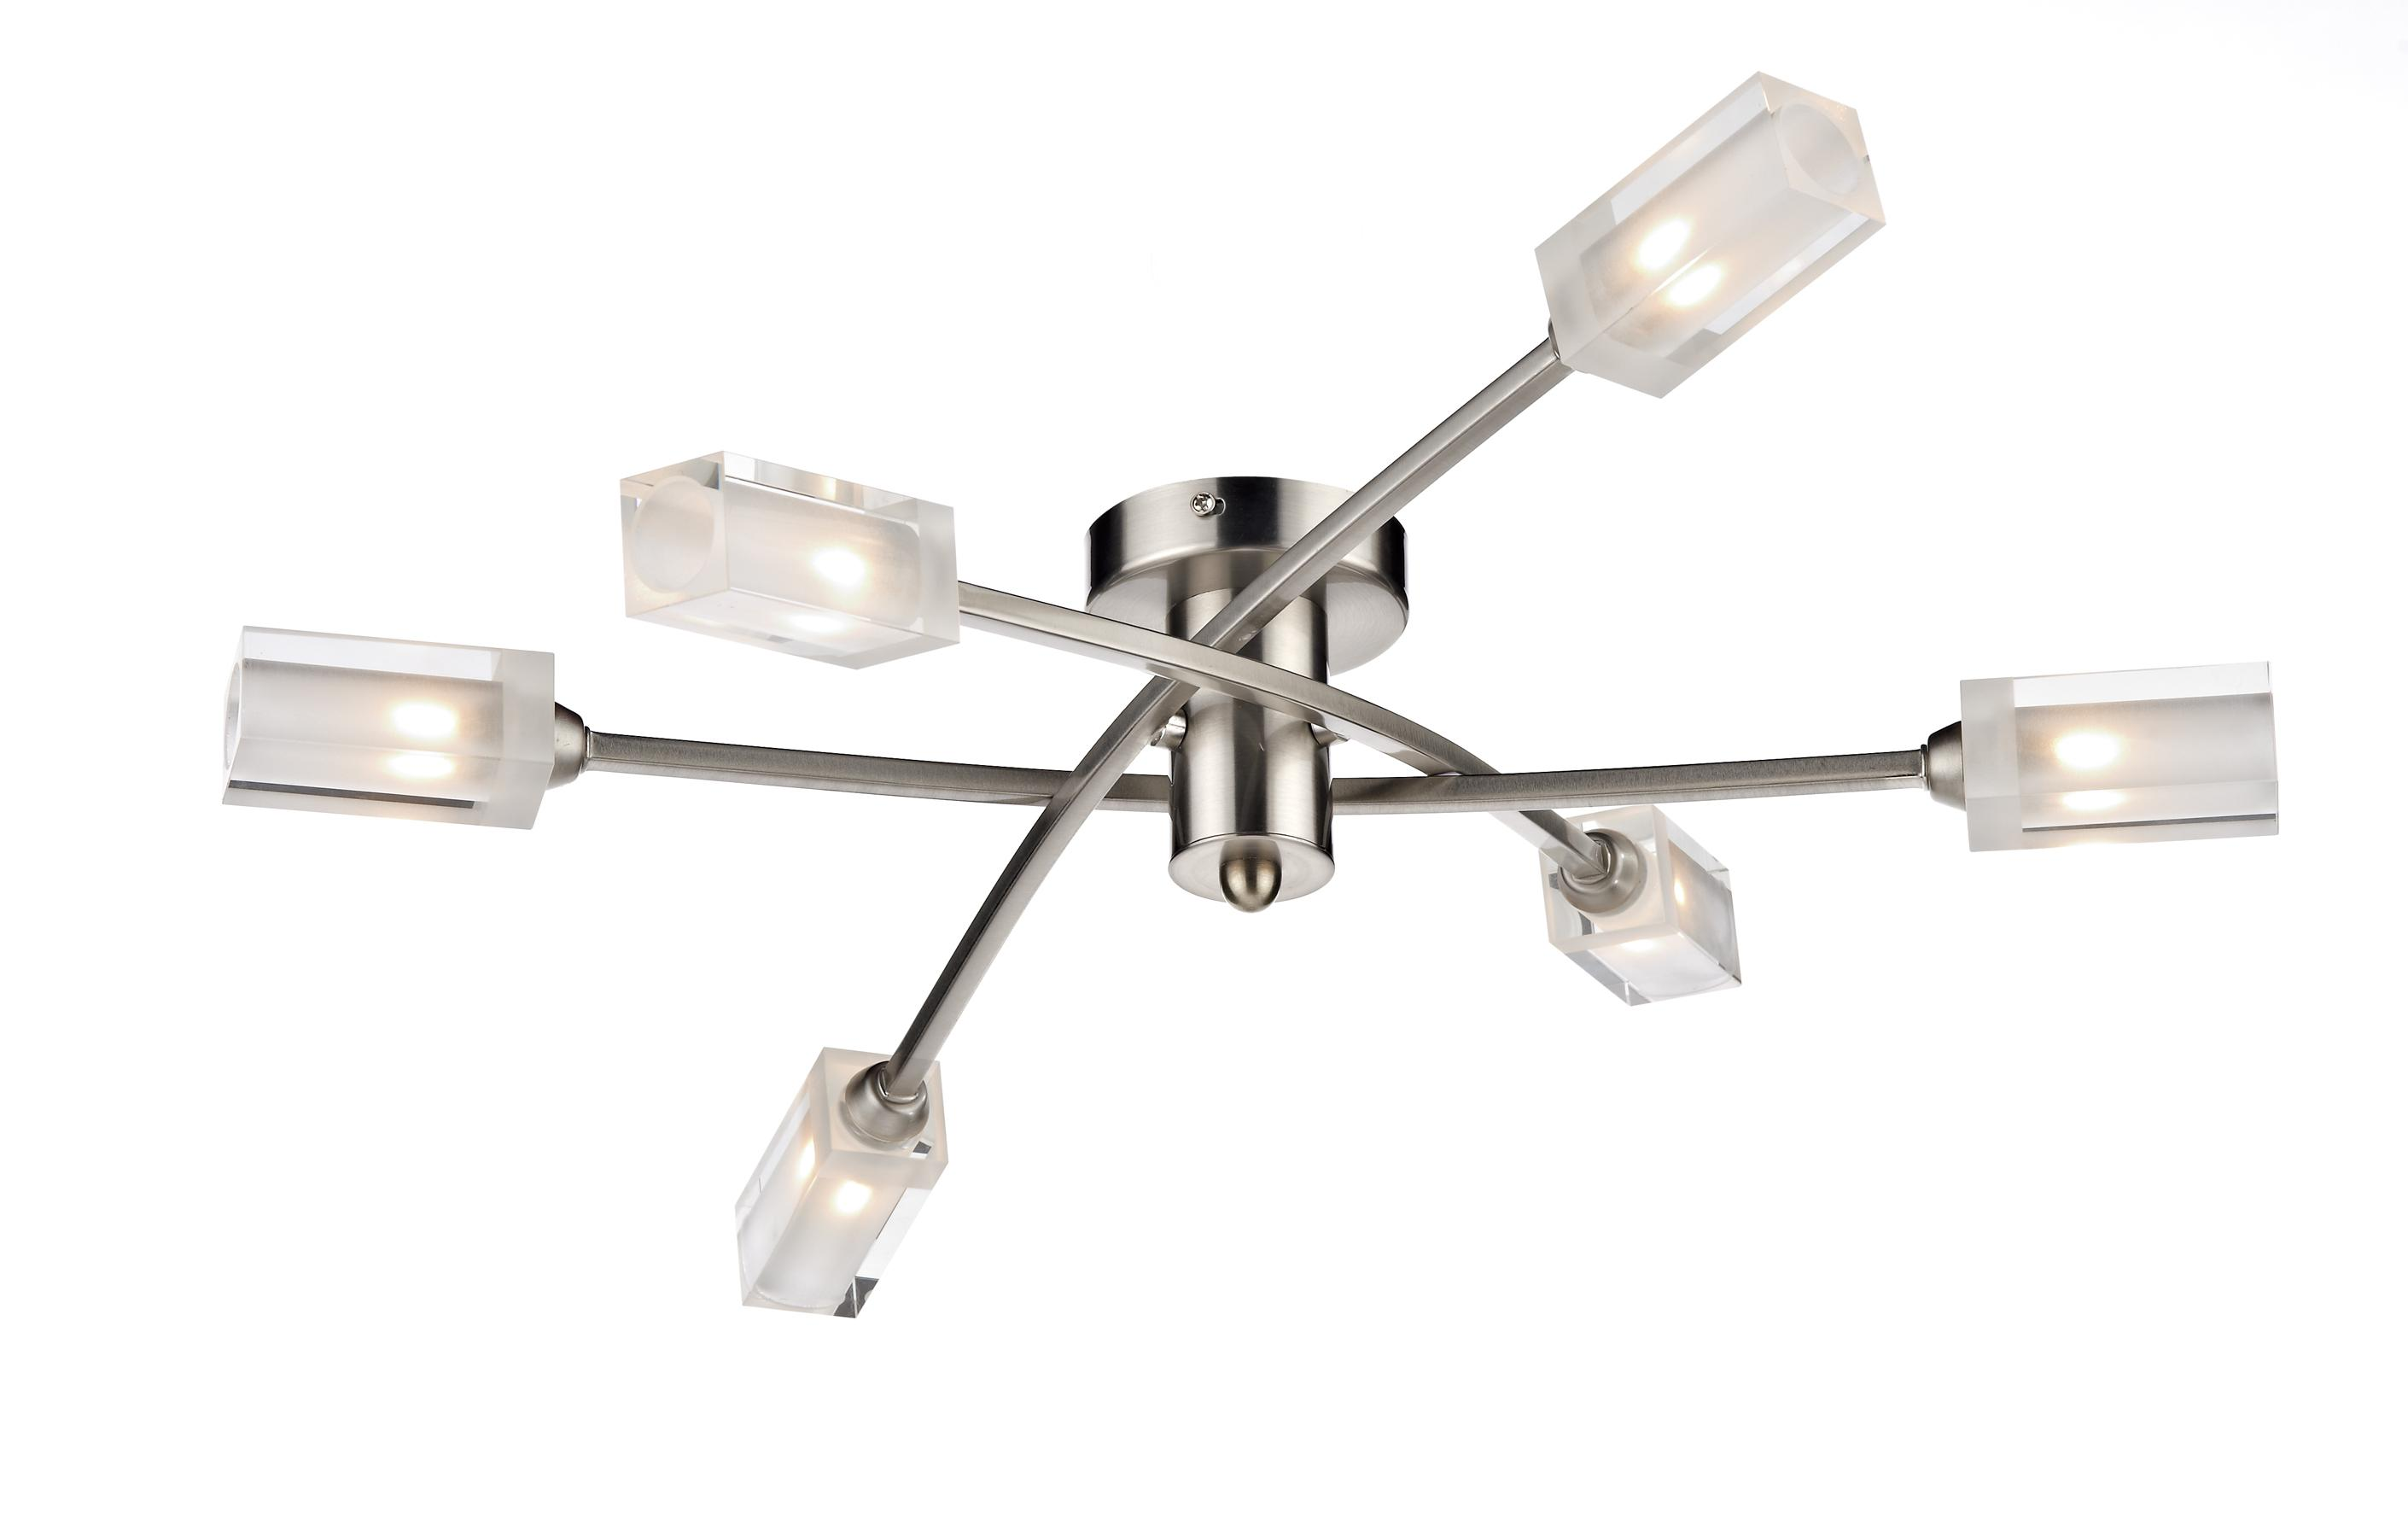 Morgan 5 light satin chrome semi flush ceiling light 820016 mor6446 morgan 5 light satin chrome semi flush ceiling light 820016 mor6446 aloadofball Choice Image